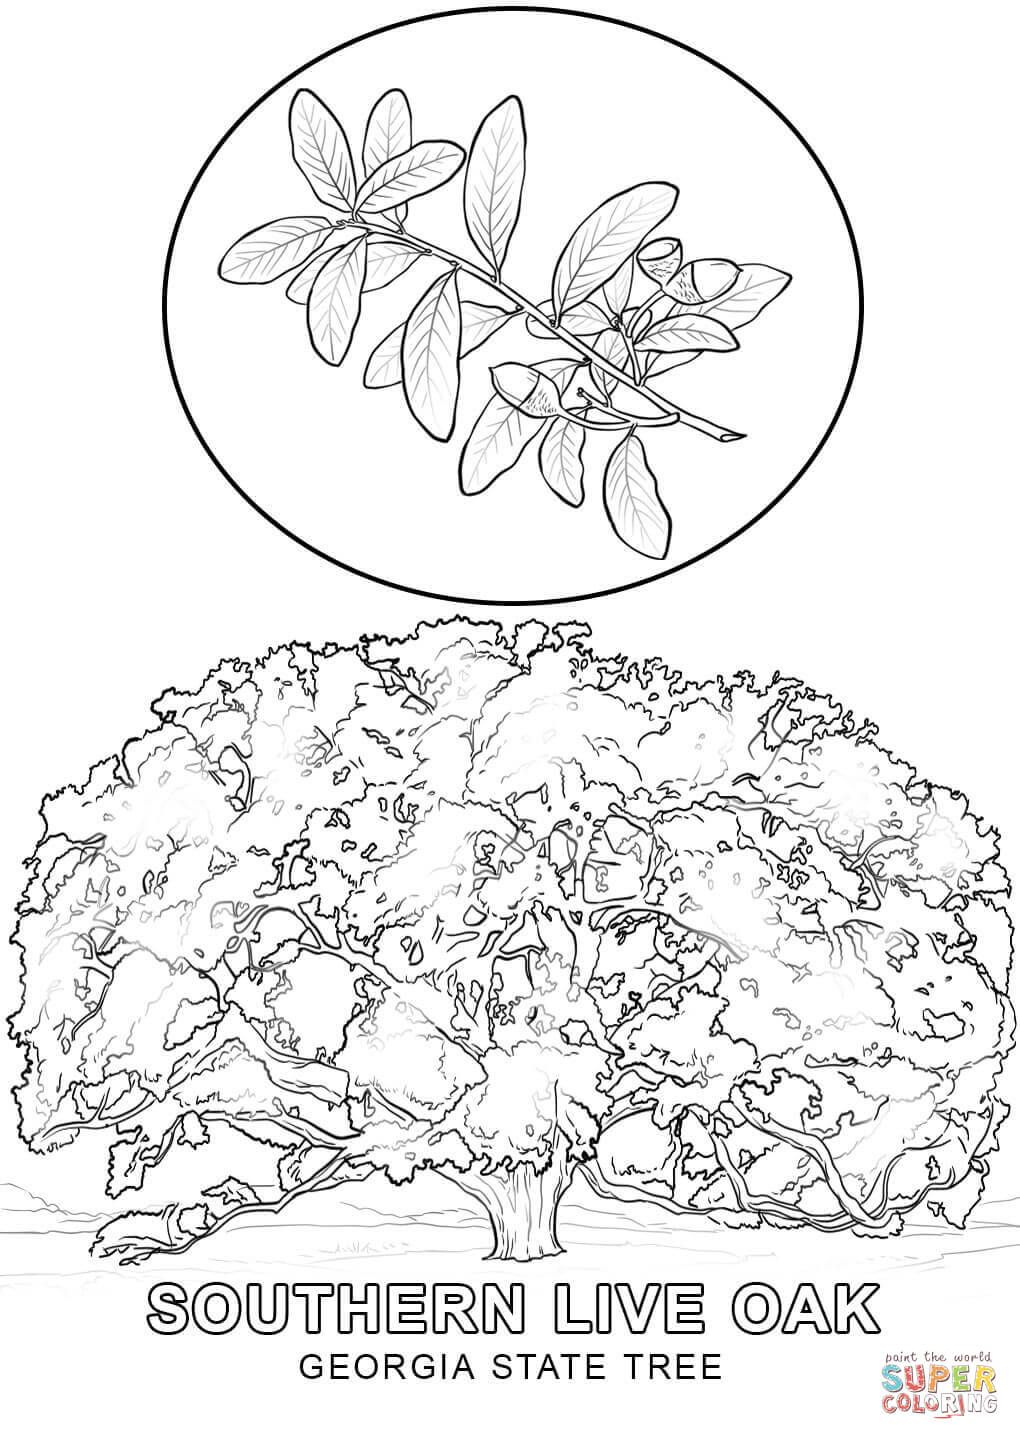 Click The Georgia State Tree Coloring Pages To View Printable Version Or Color It Online Compatible With Tree Coloring Page Bird Coloring Pages Coloring Pages